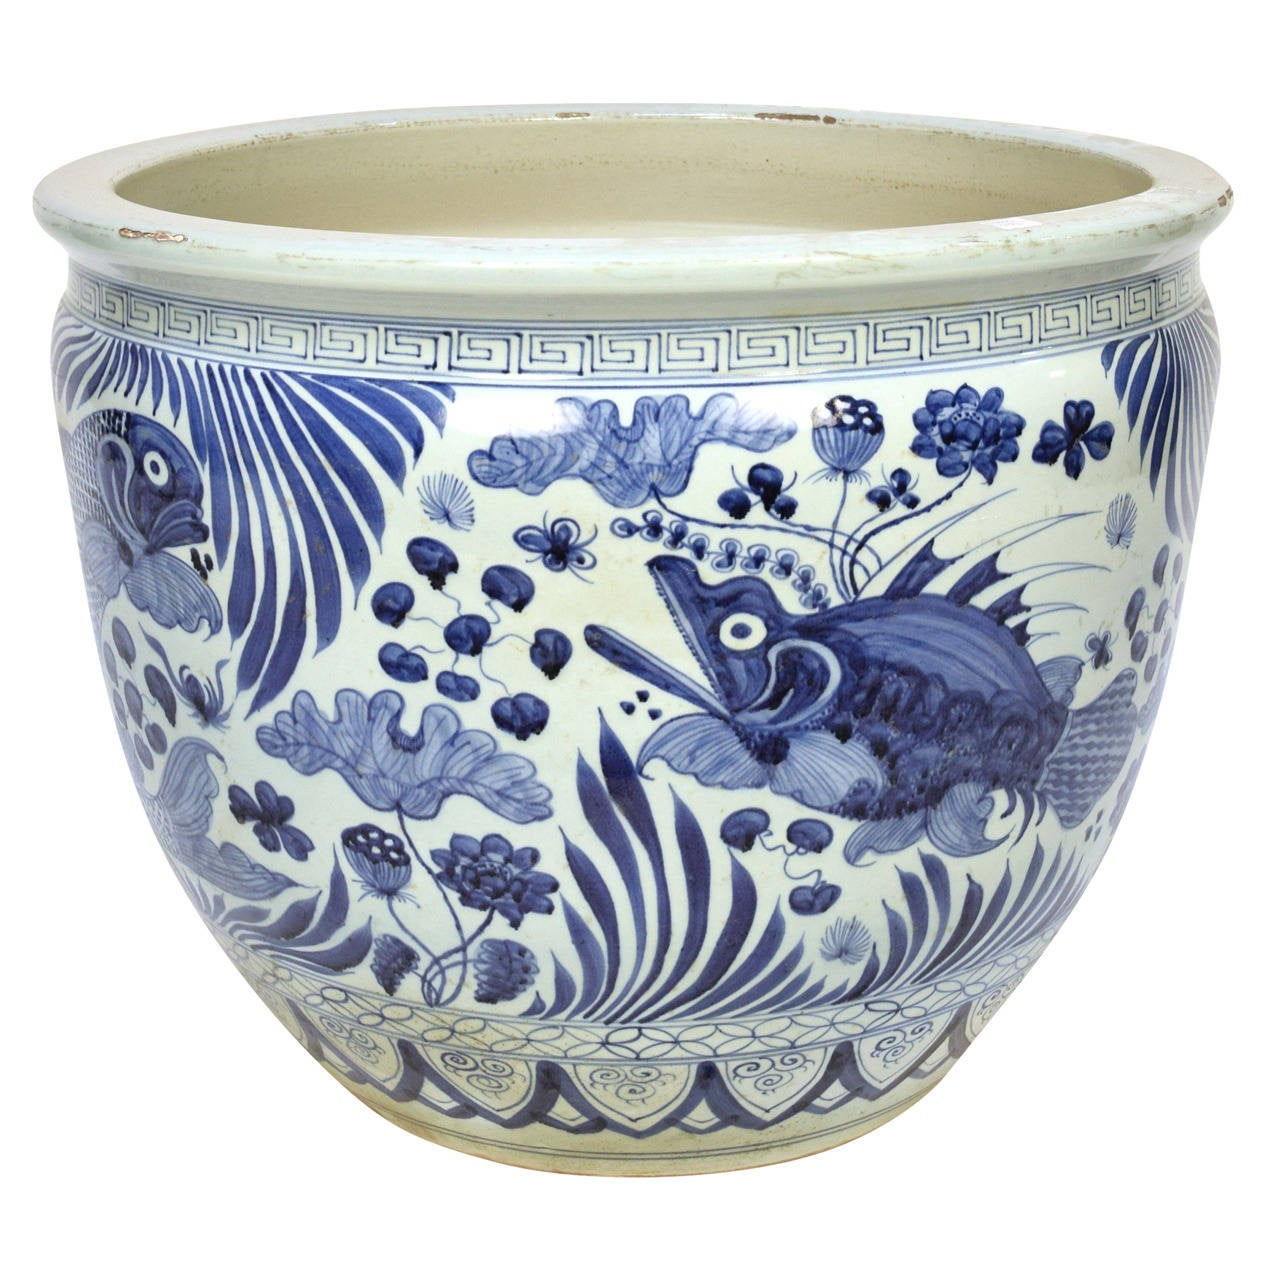 Blue and white chinese fish bowl at 1stdibs for Chinese fish bowl planter